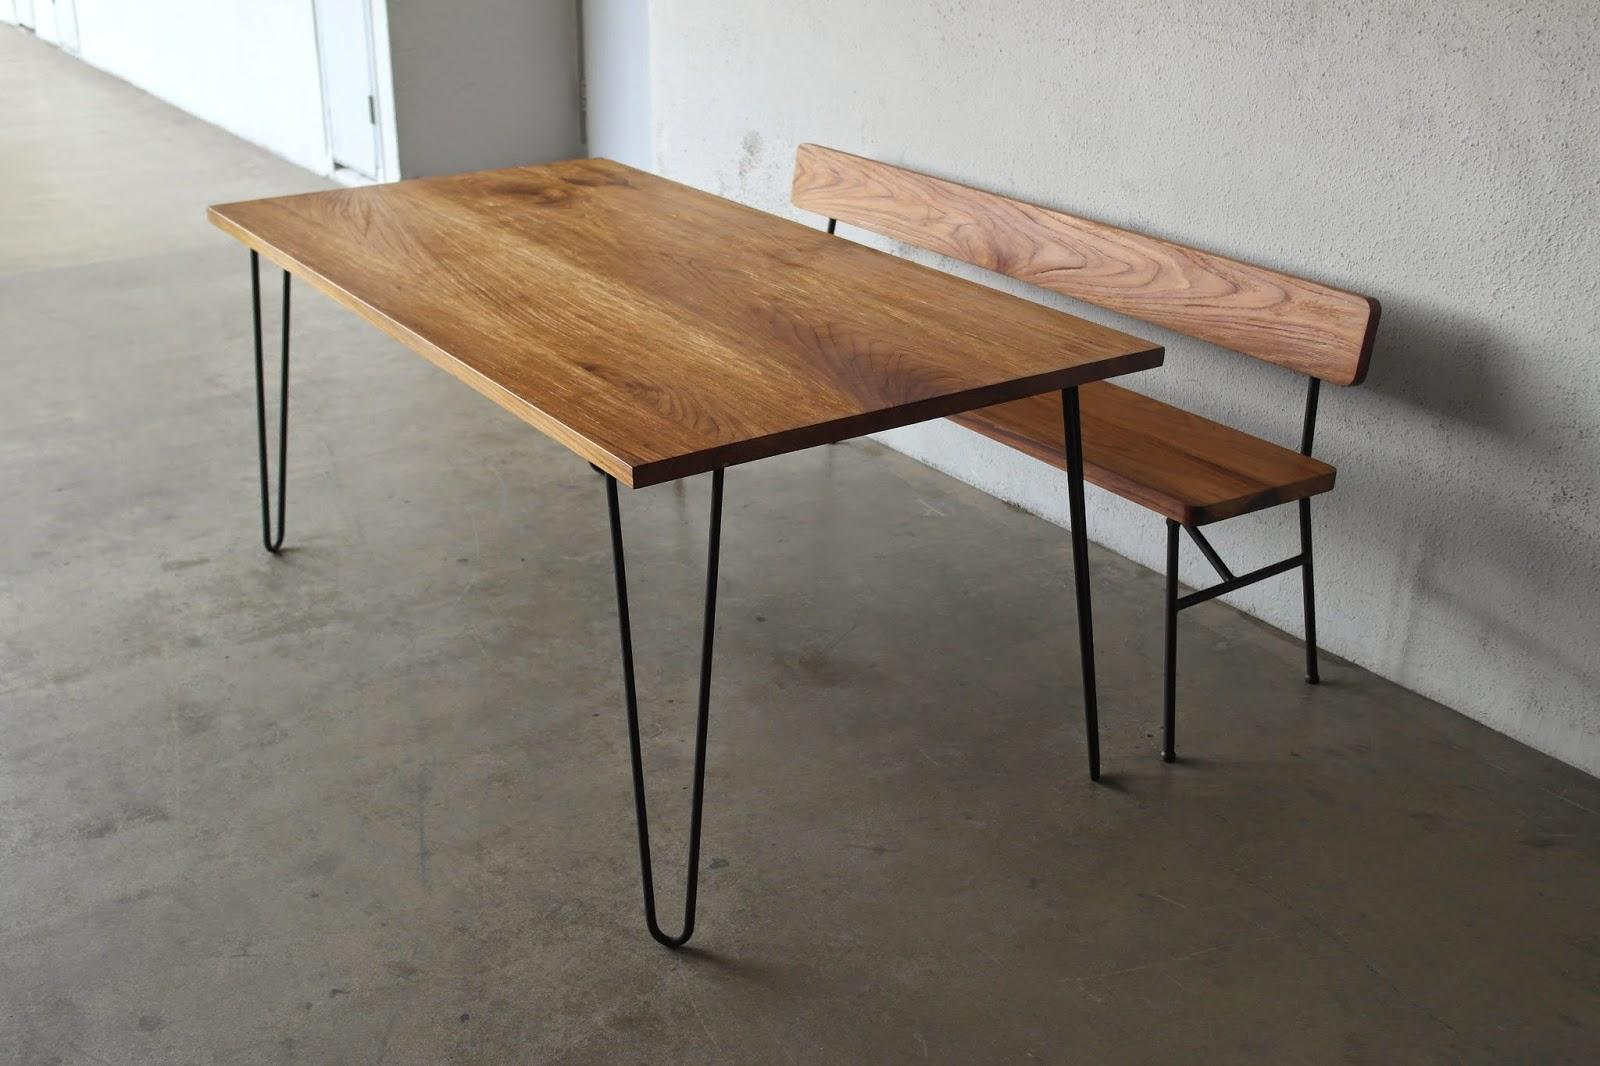 Matching Dining Table And Bench With Pencil Legs.